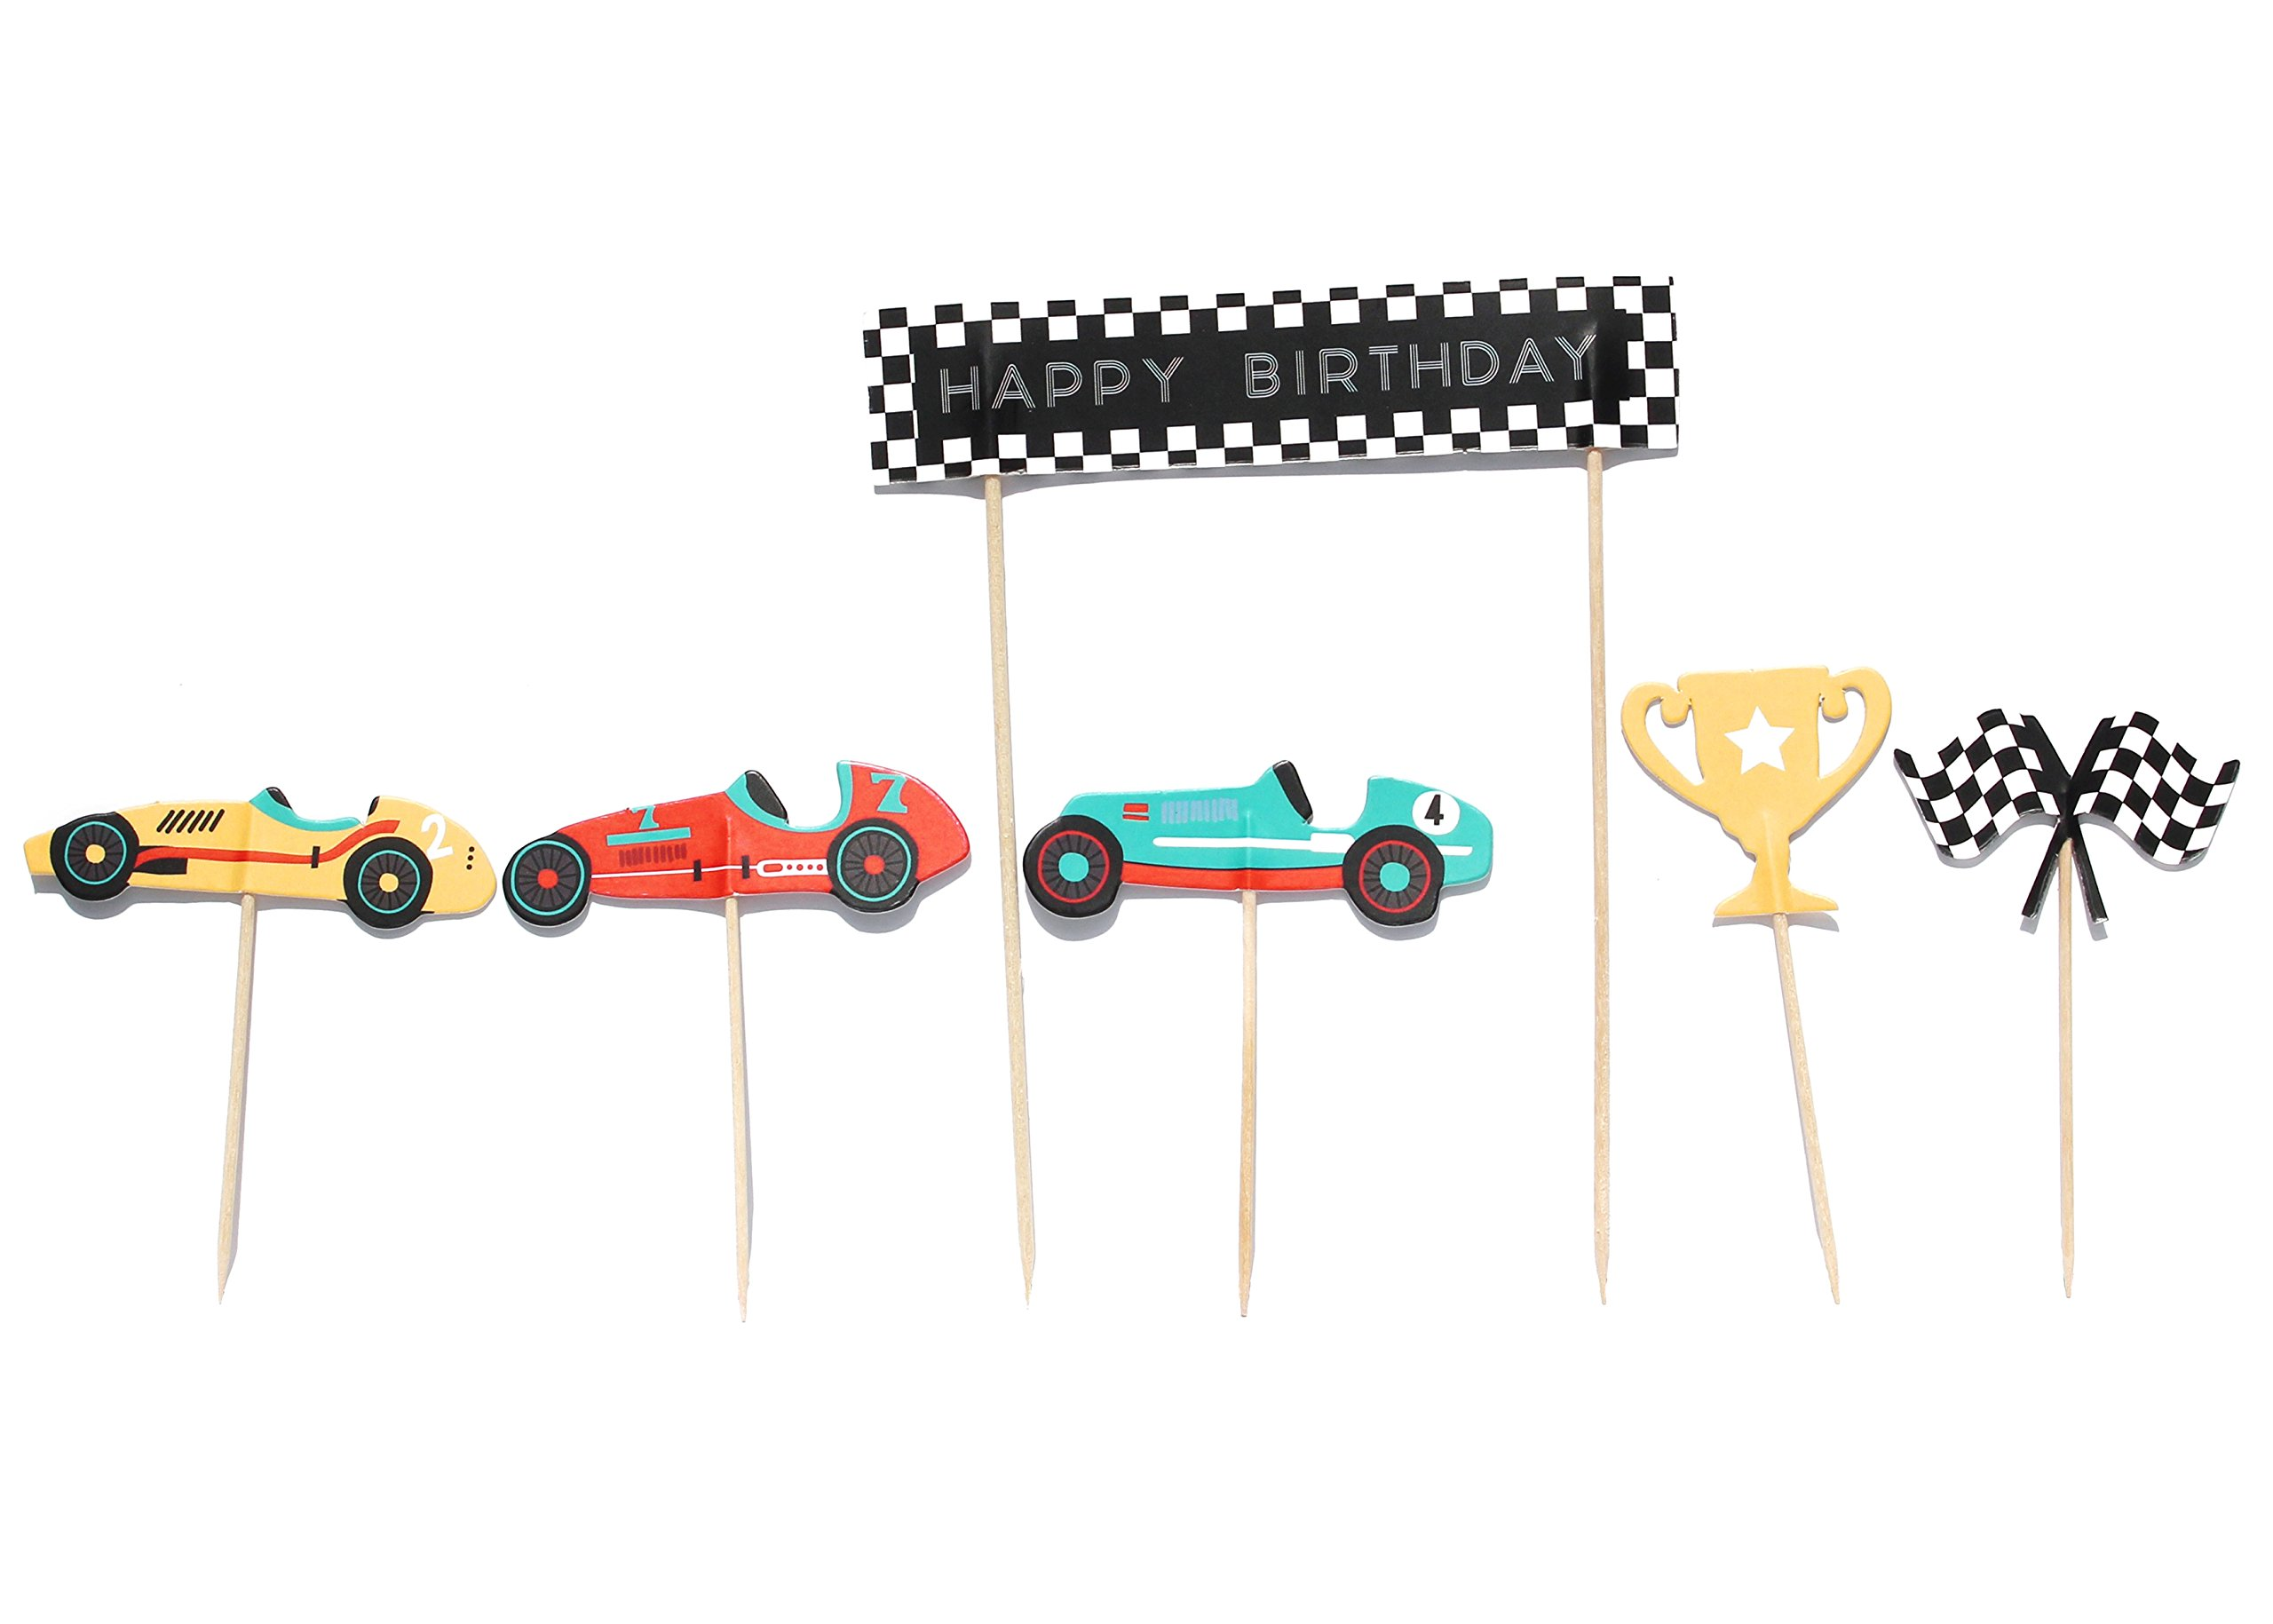 Vintage Race Car- Cupcake, Cake Toppers | Checkered Flags, Trophy | Racing Car Decorations | Birthday | Baby Shower | Car Theme | Kids Party Decor | Dessert Topper | Food Pick